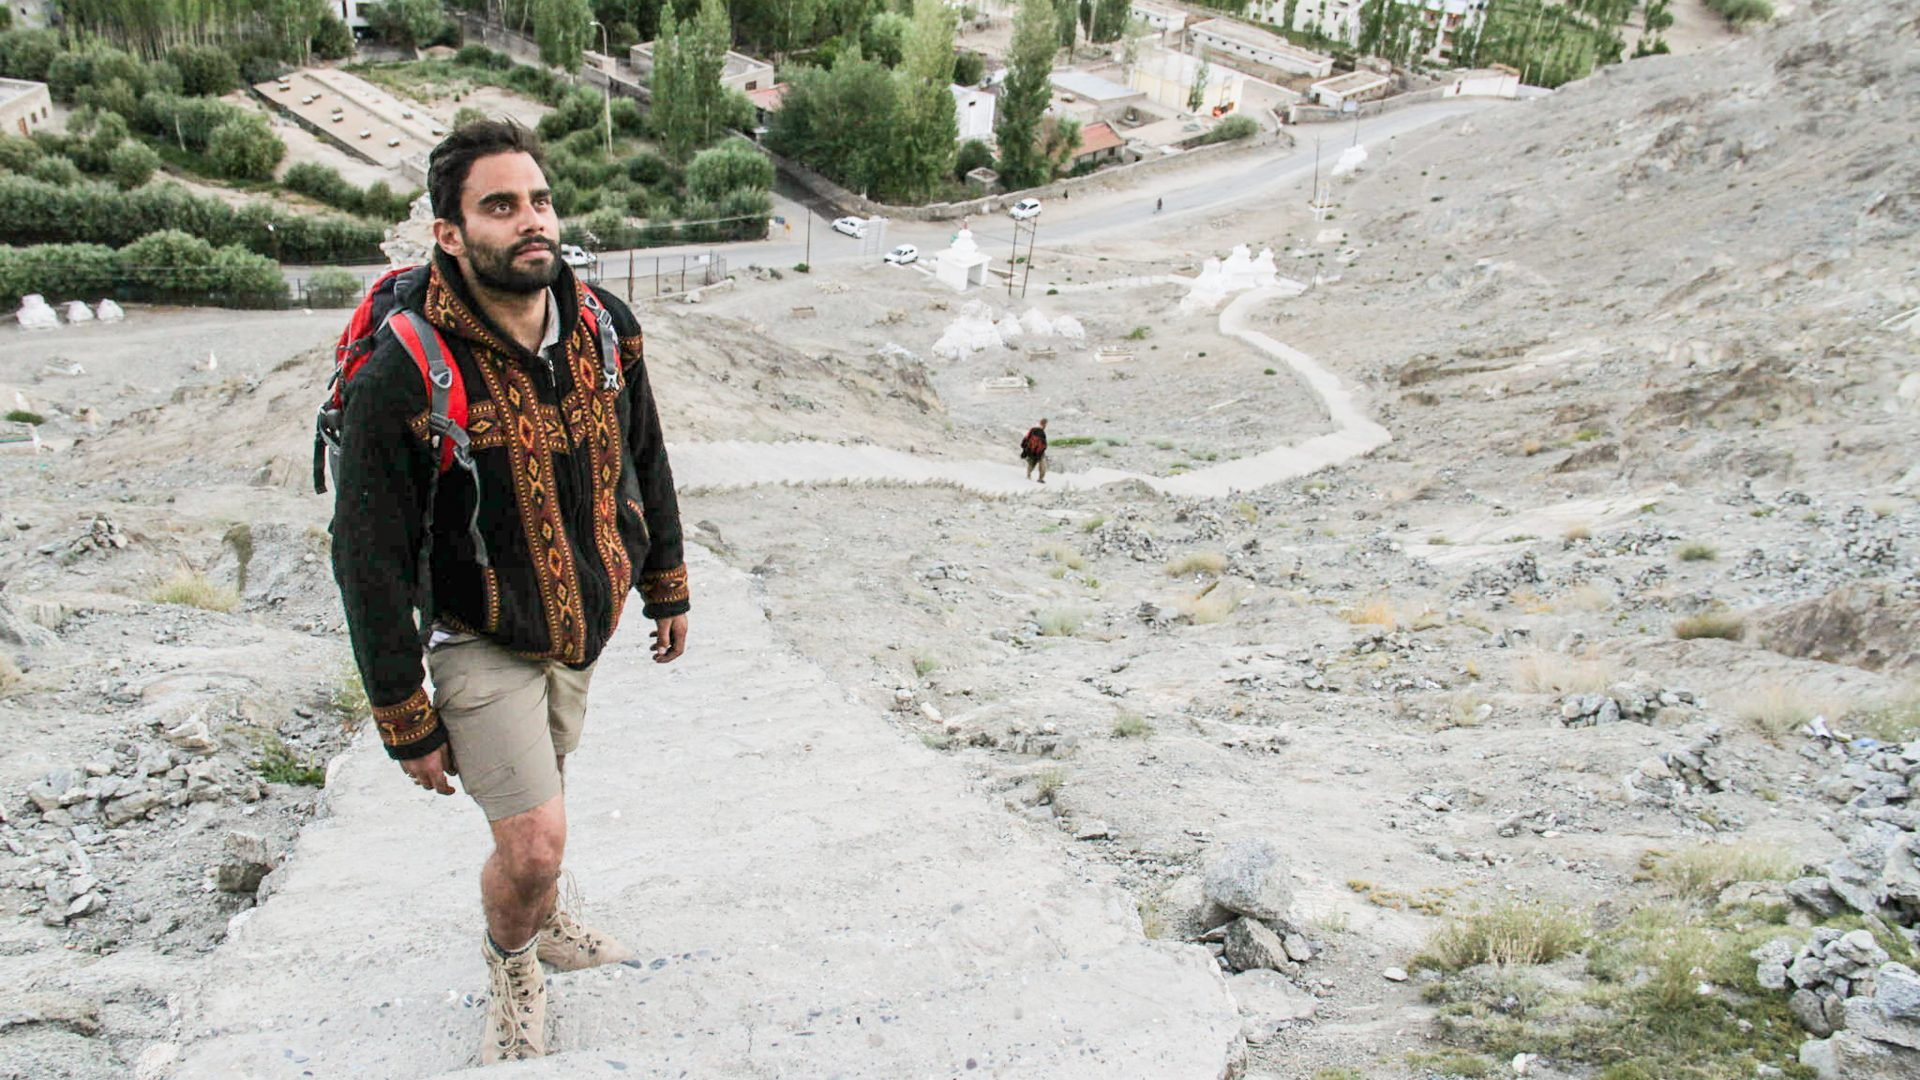 Writer Ash Bhardaj climbs up a steep hill in the Indus Valley, Ladakh, Himalayas.